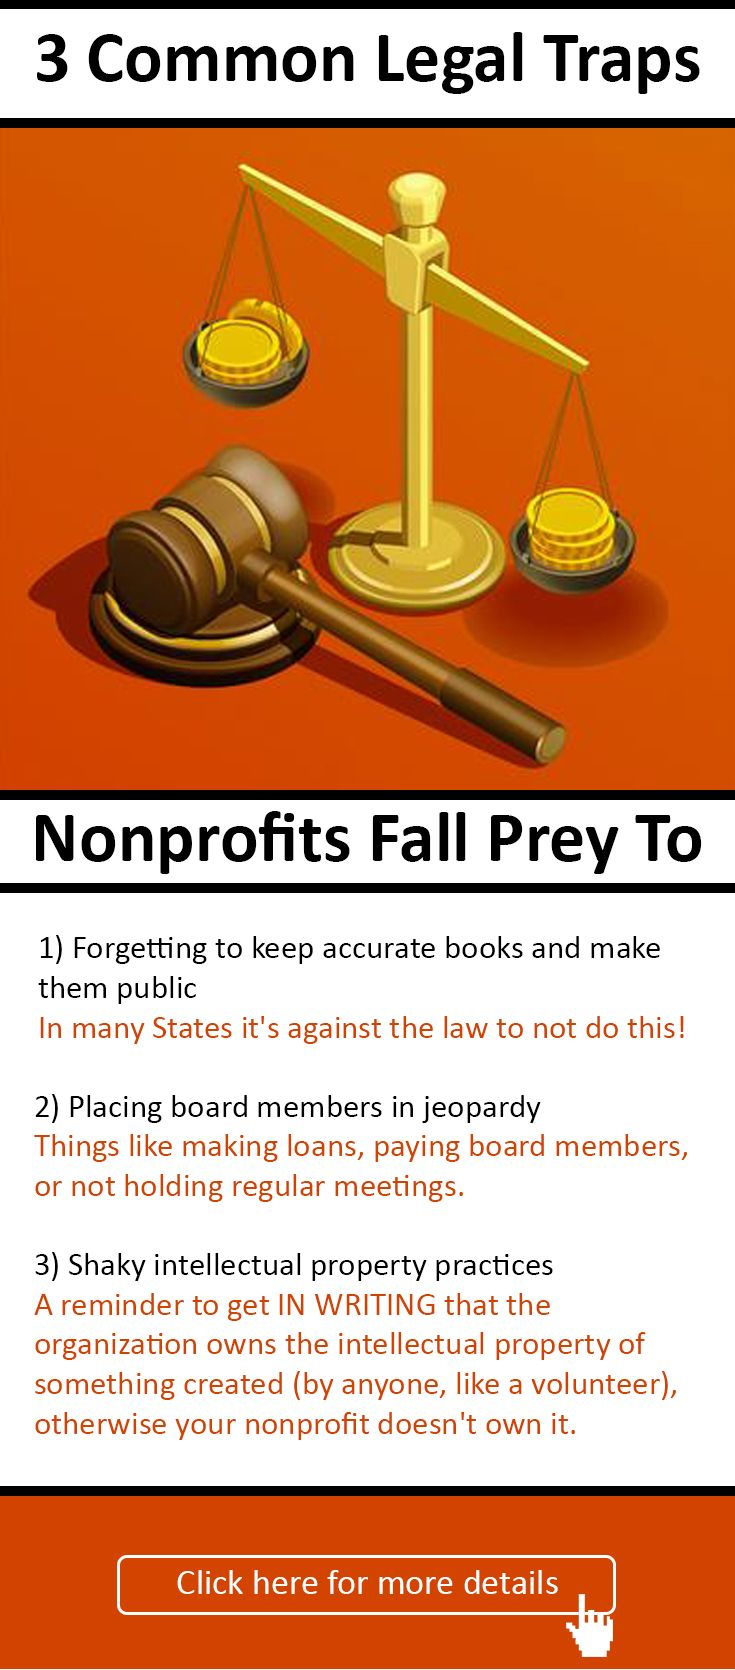 If you're a nonprofit, you need to know this!